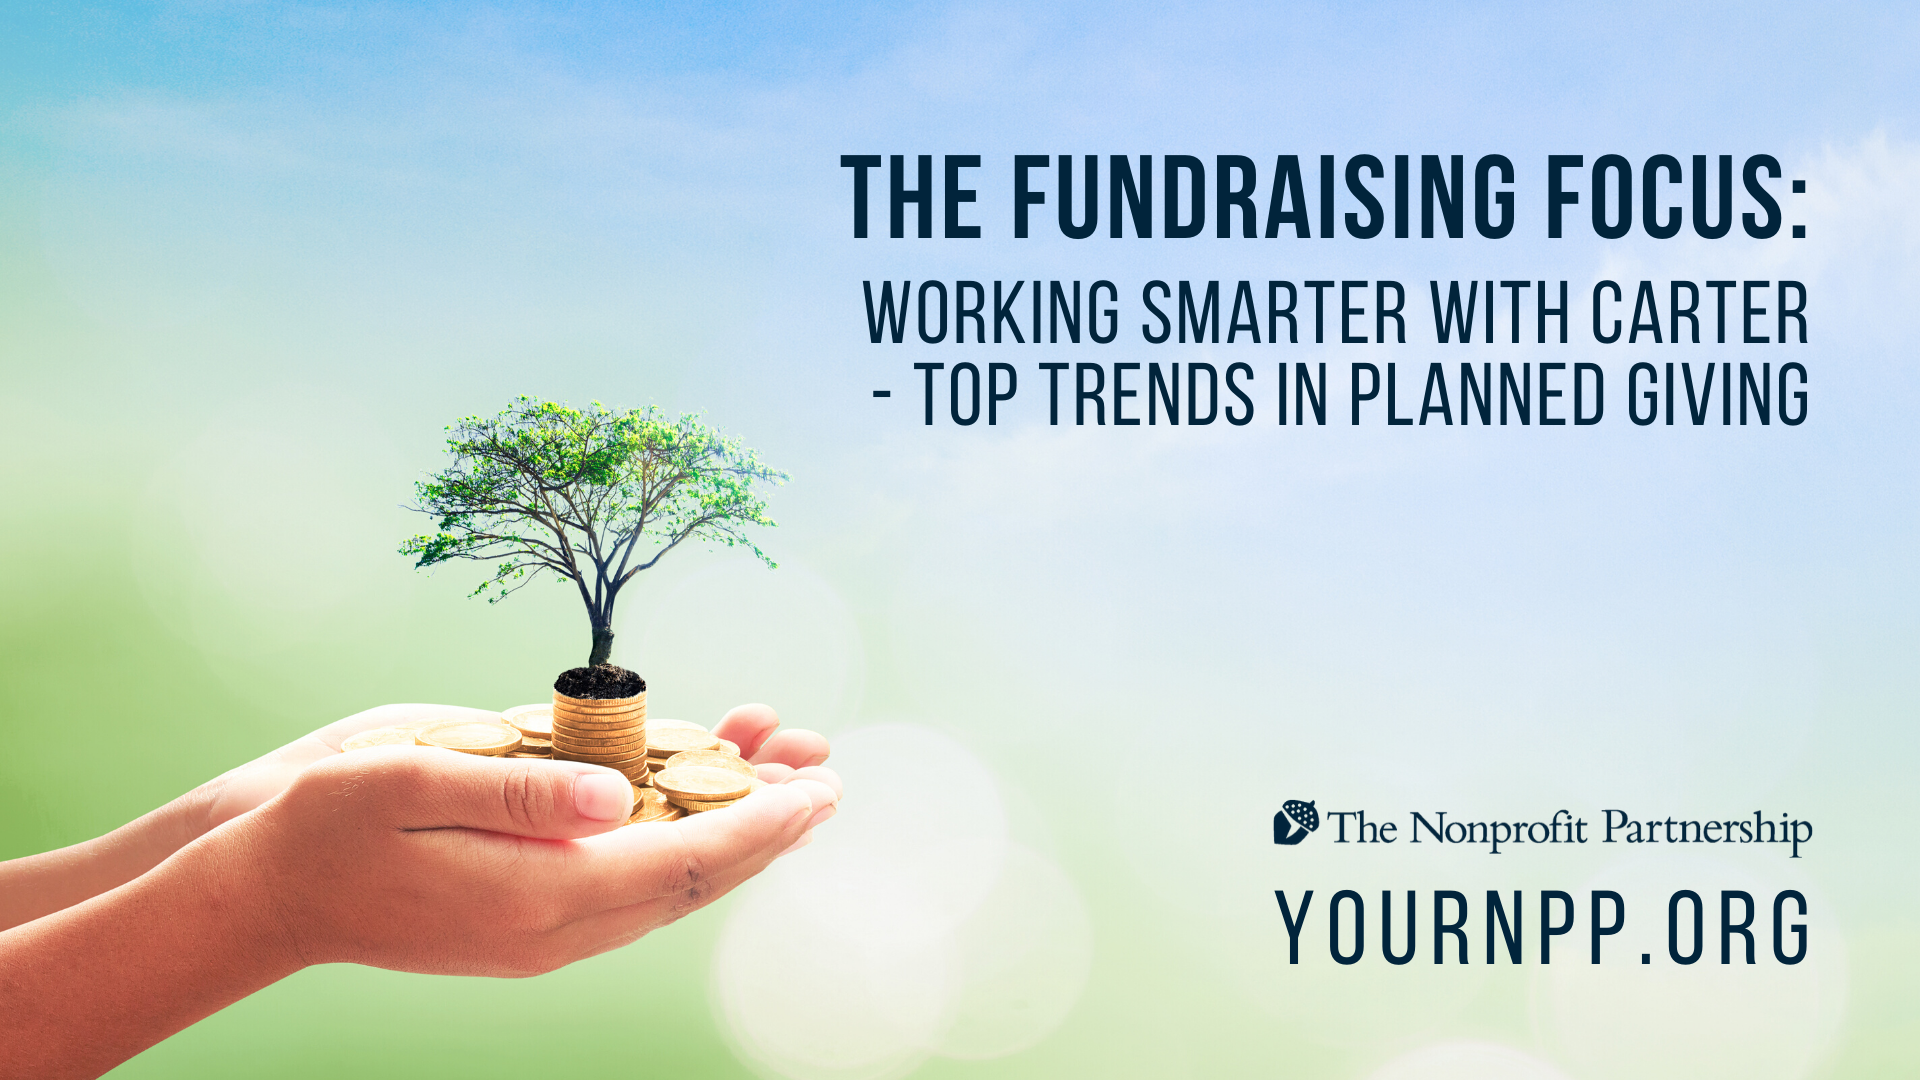 The Fundraising Focus: Working Smarter with Carter - Top Trends in Planned Giving